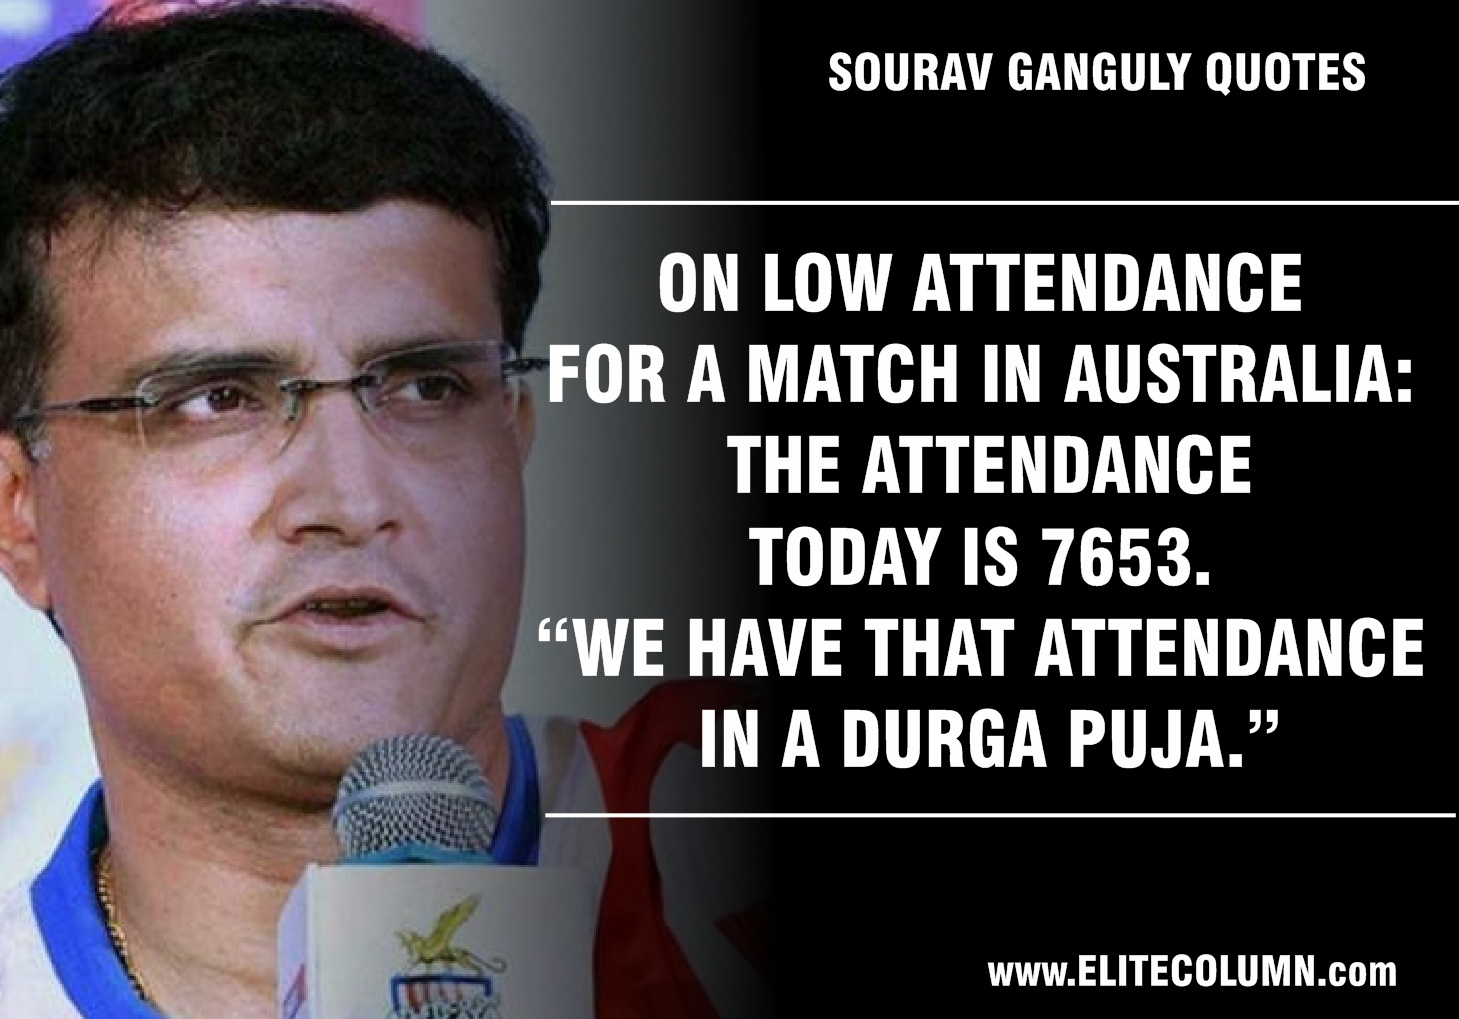 Sourav Ganguly Quotes (7)